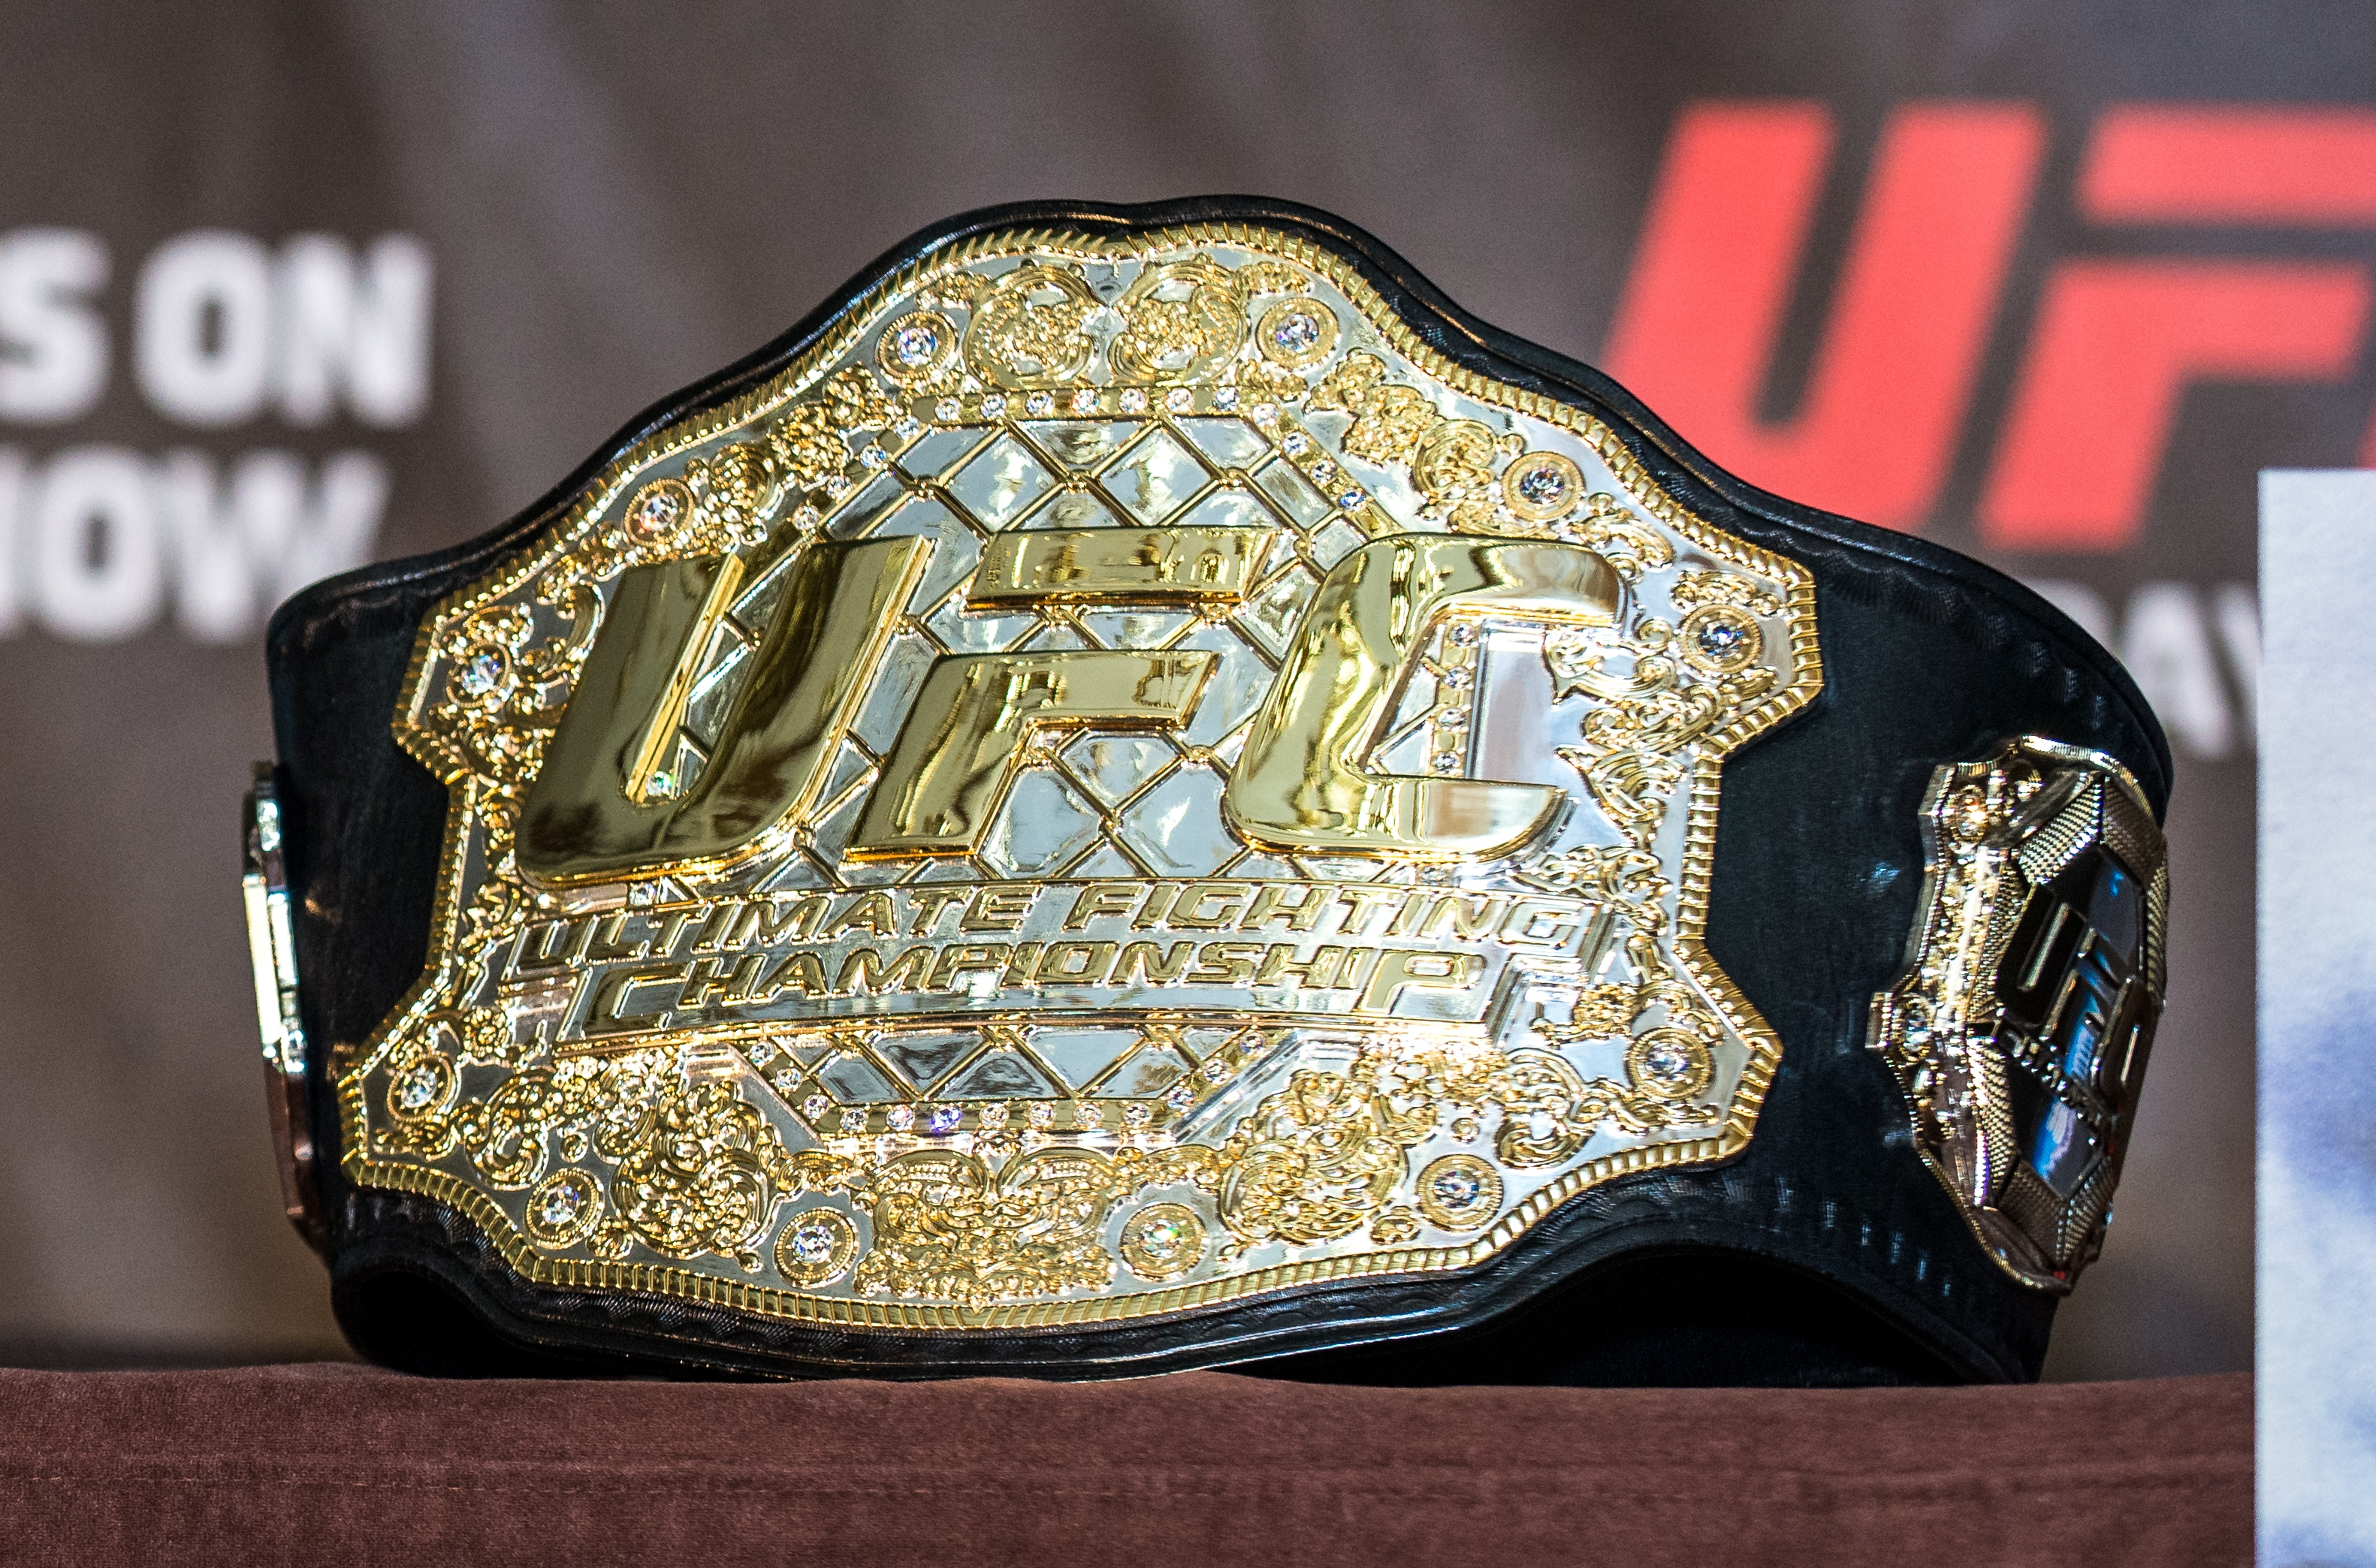 File:UFC Championship Belt.jpg - Wikimedia Commons